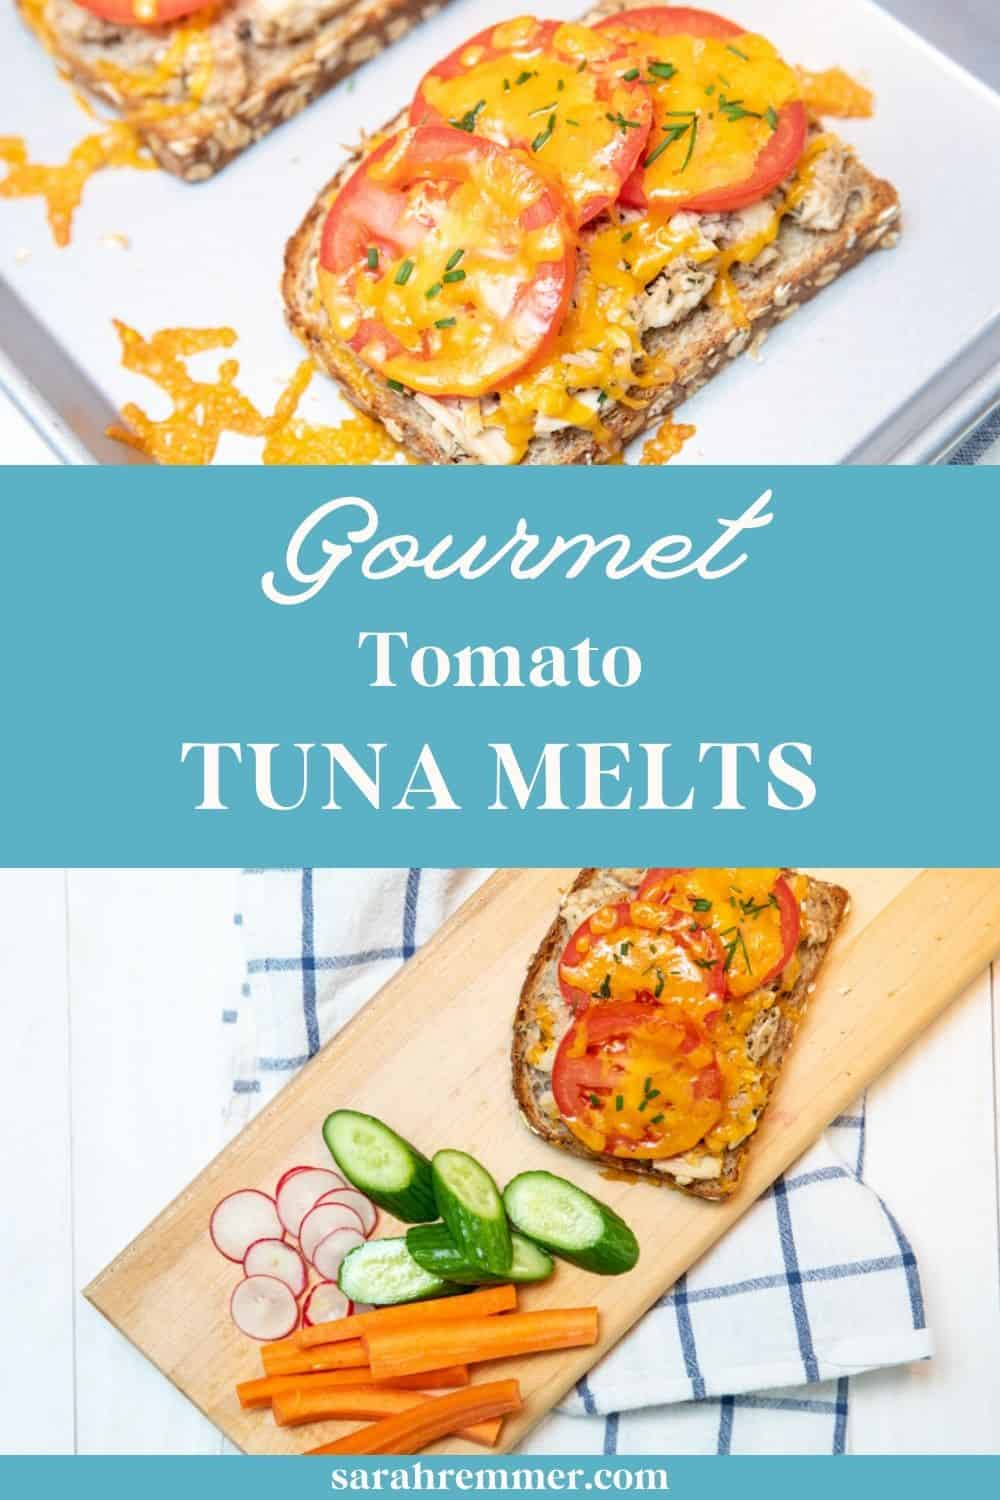 Tuna melts get a bad rep, but let me tell you...these gourmet tomato tuna melts are so delicious, easy and nutritious! My kids gobble them up every single time.